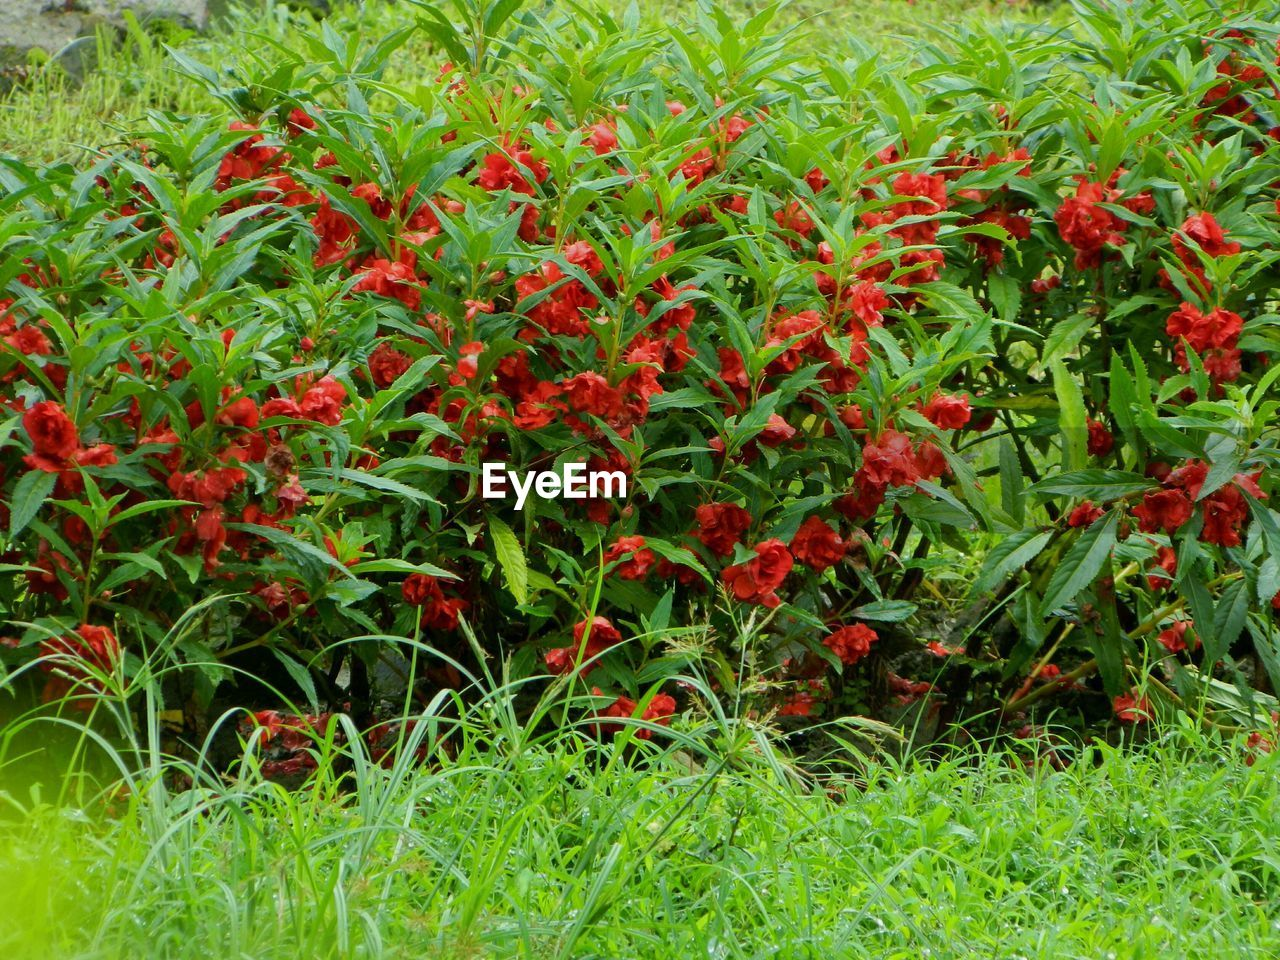 grass, red, green color, growth, nature, field, plant, outdoors, beauty in nature, no people, day, flower, freshness, close-up